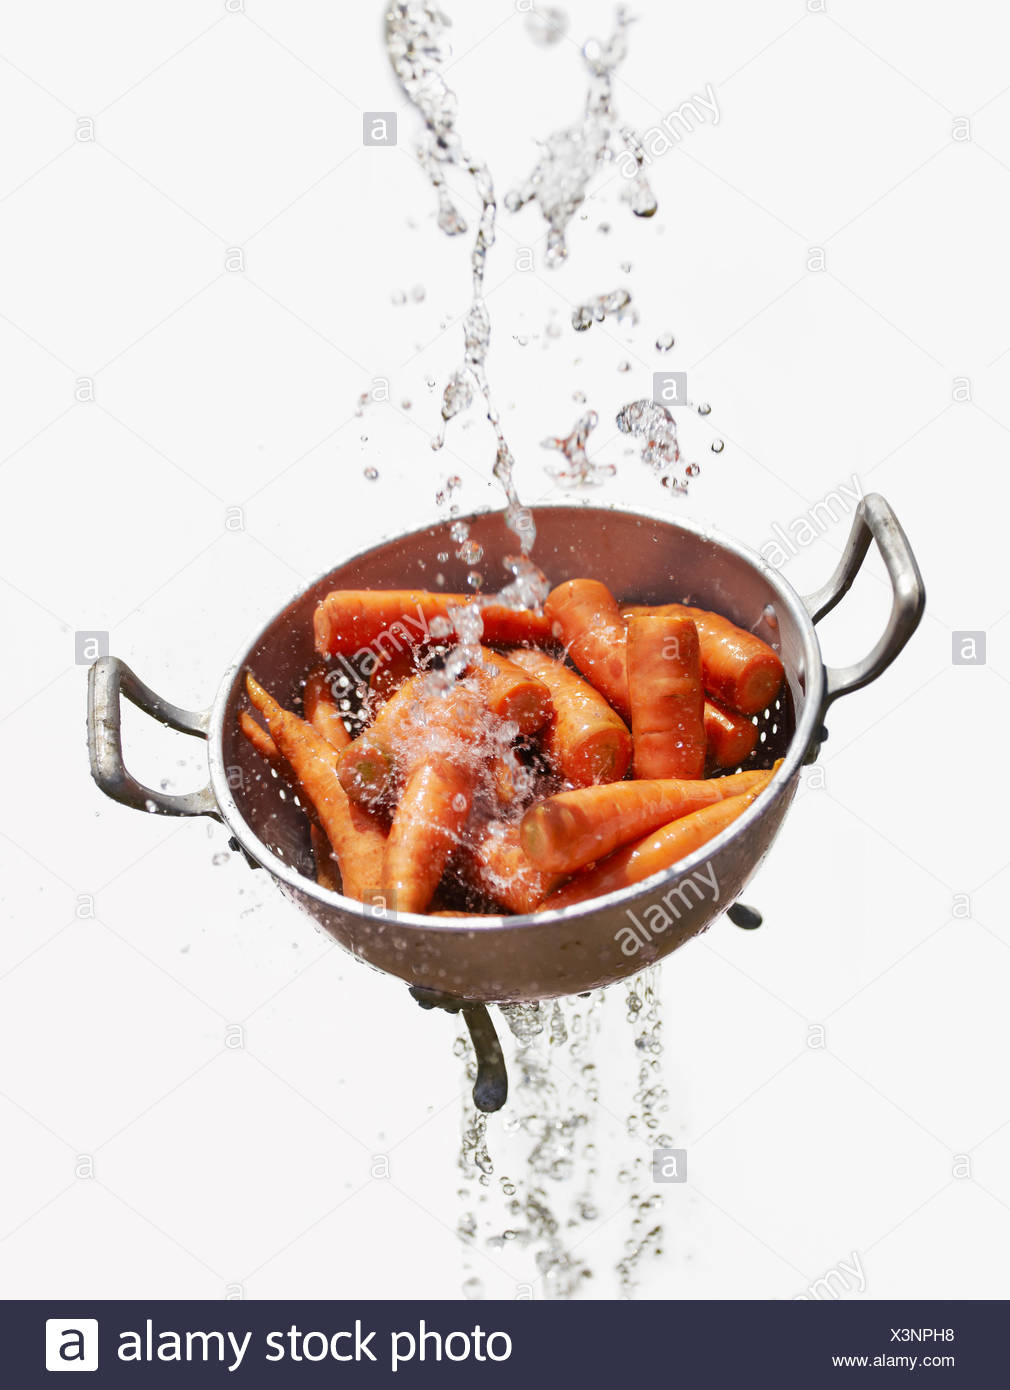 Water falling through colander with fresh carrots - Stock Image